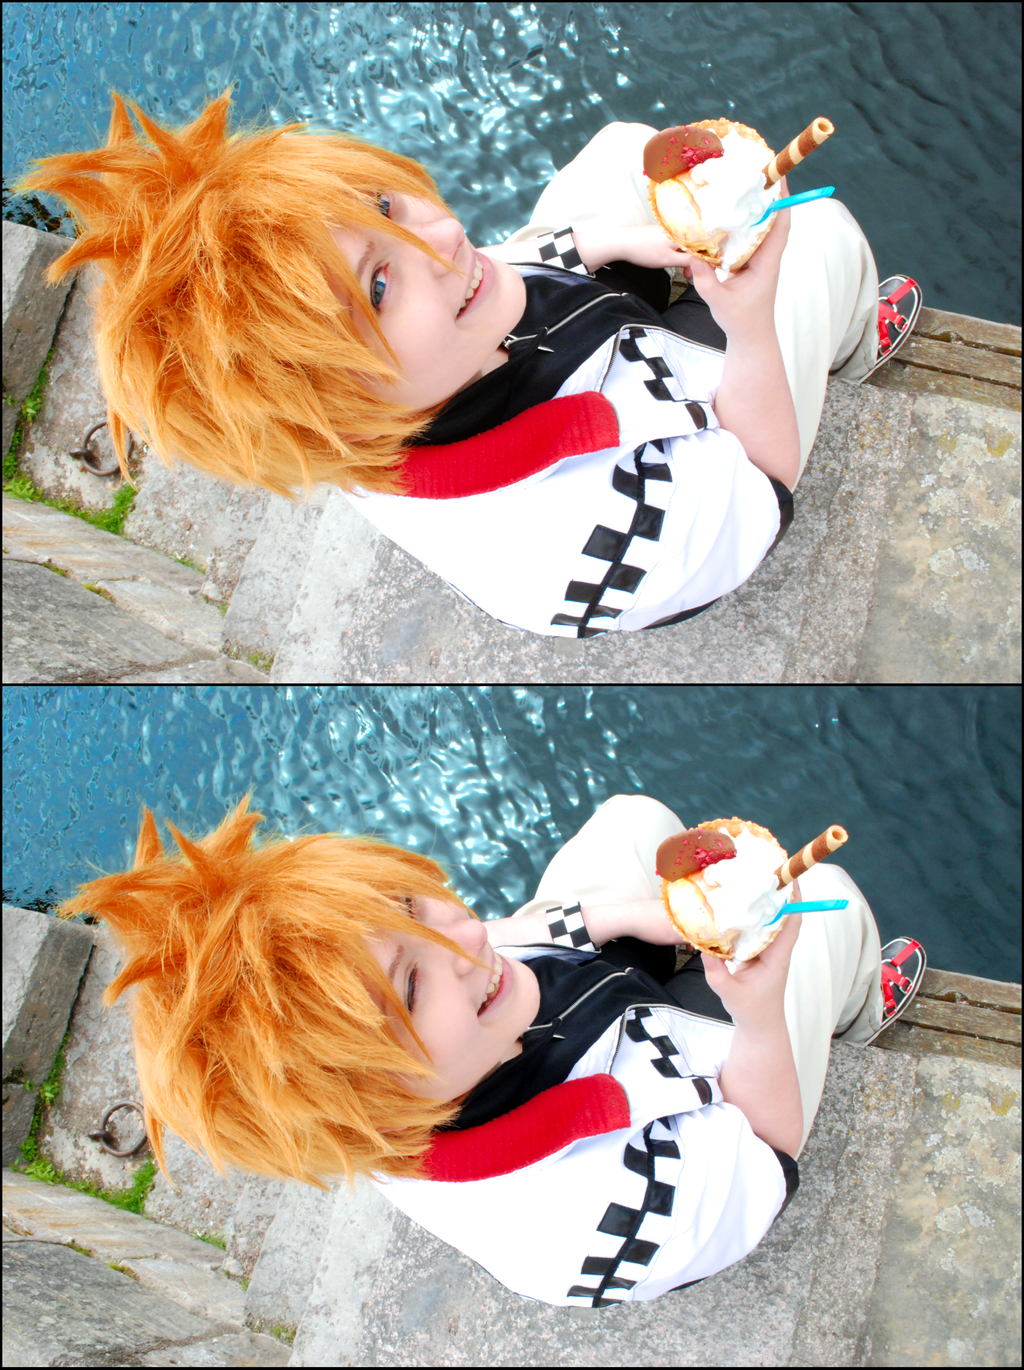 Roxas - Summers first icecream by Millahwood